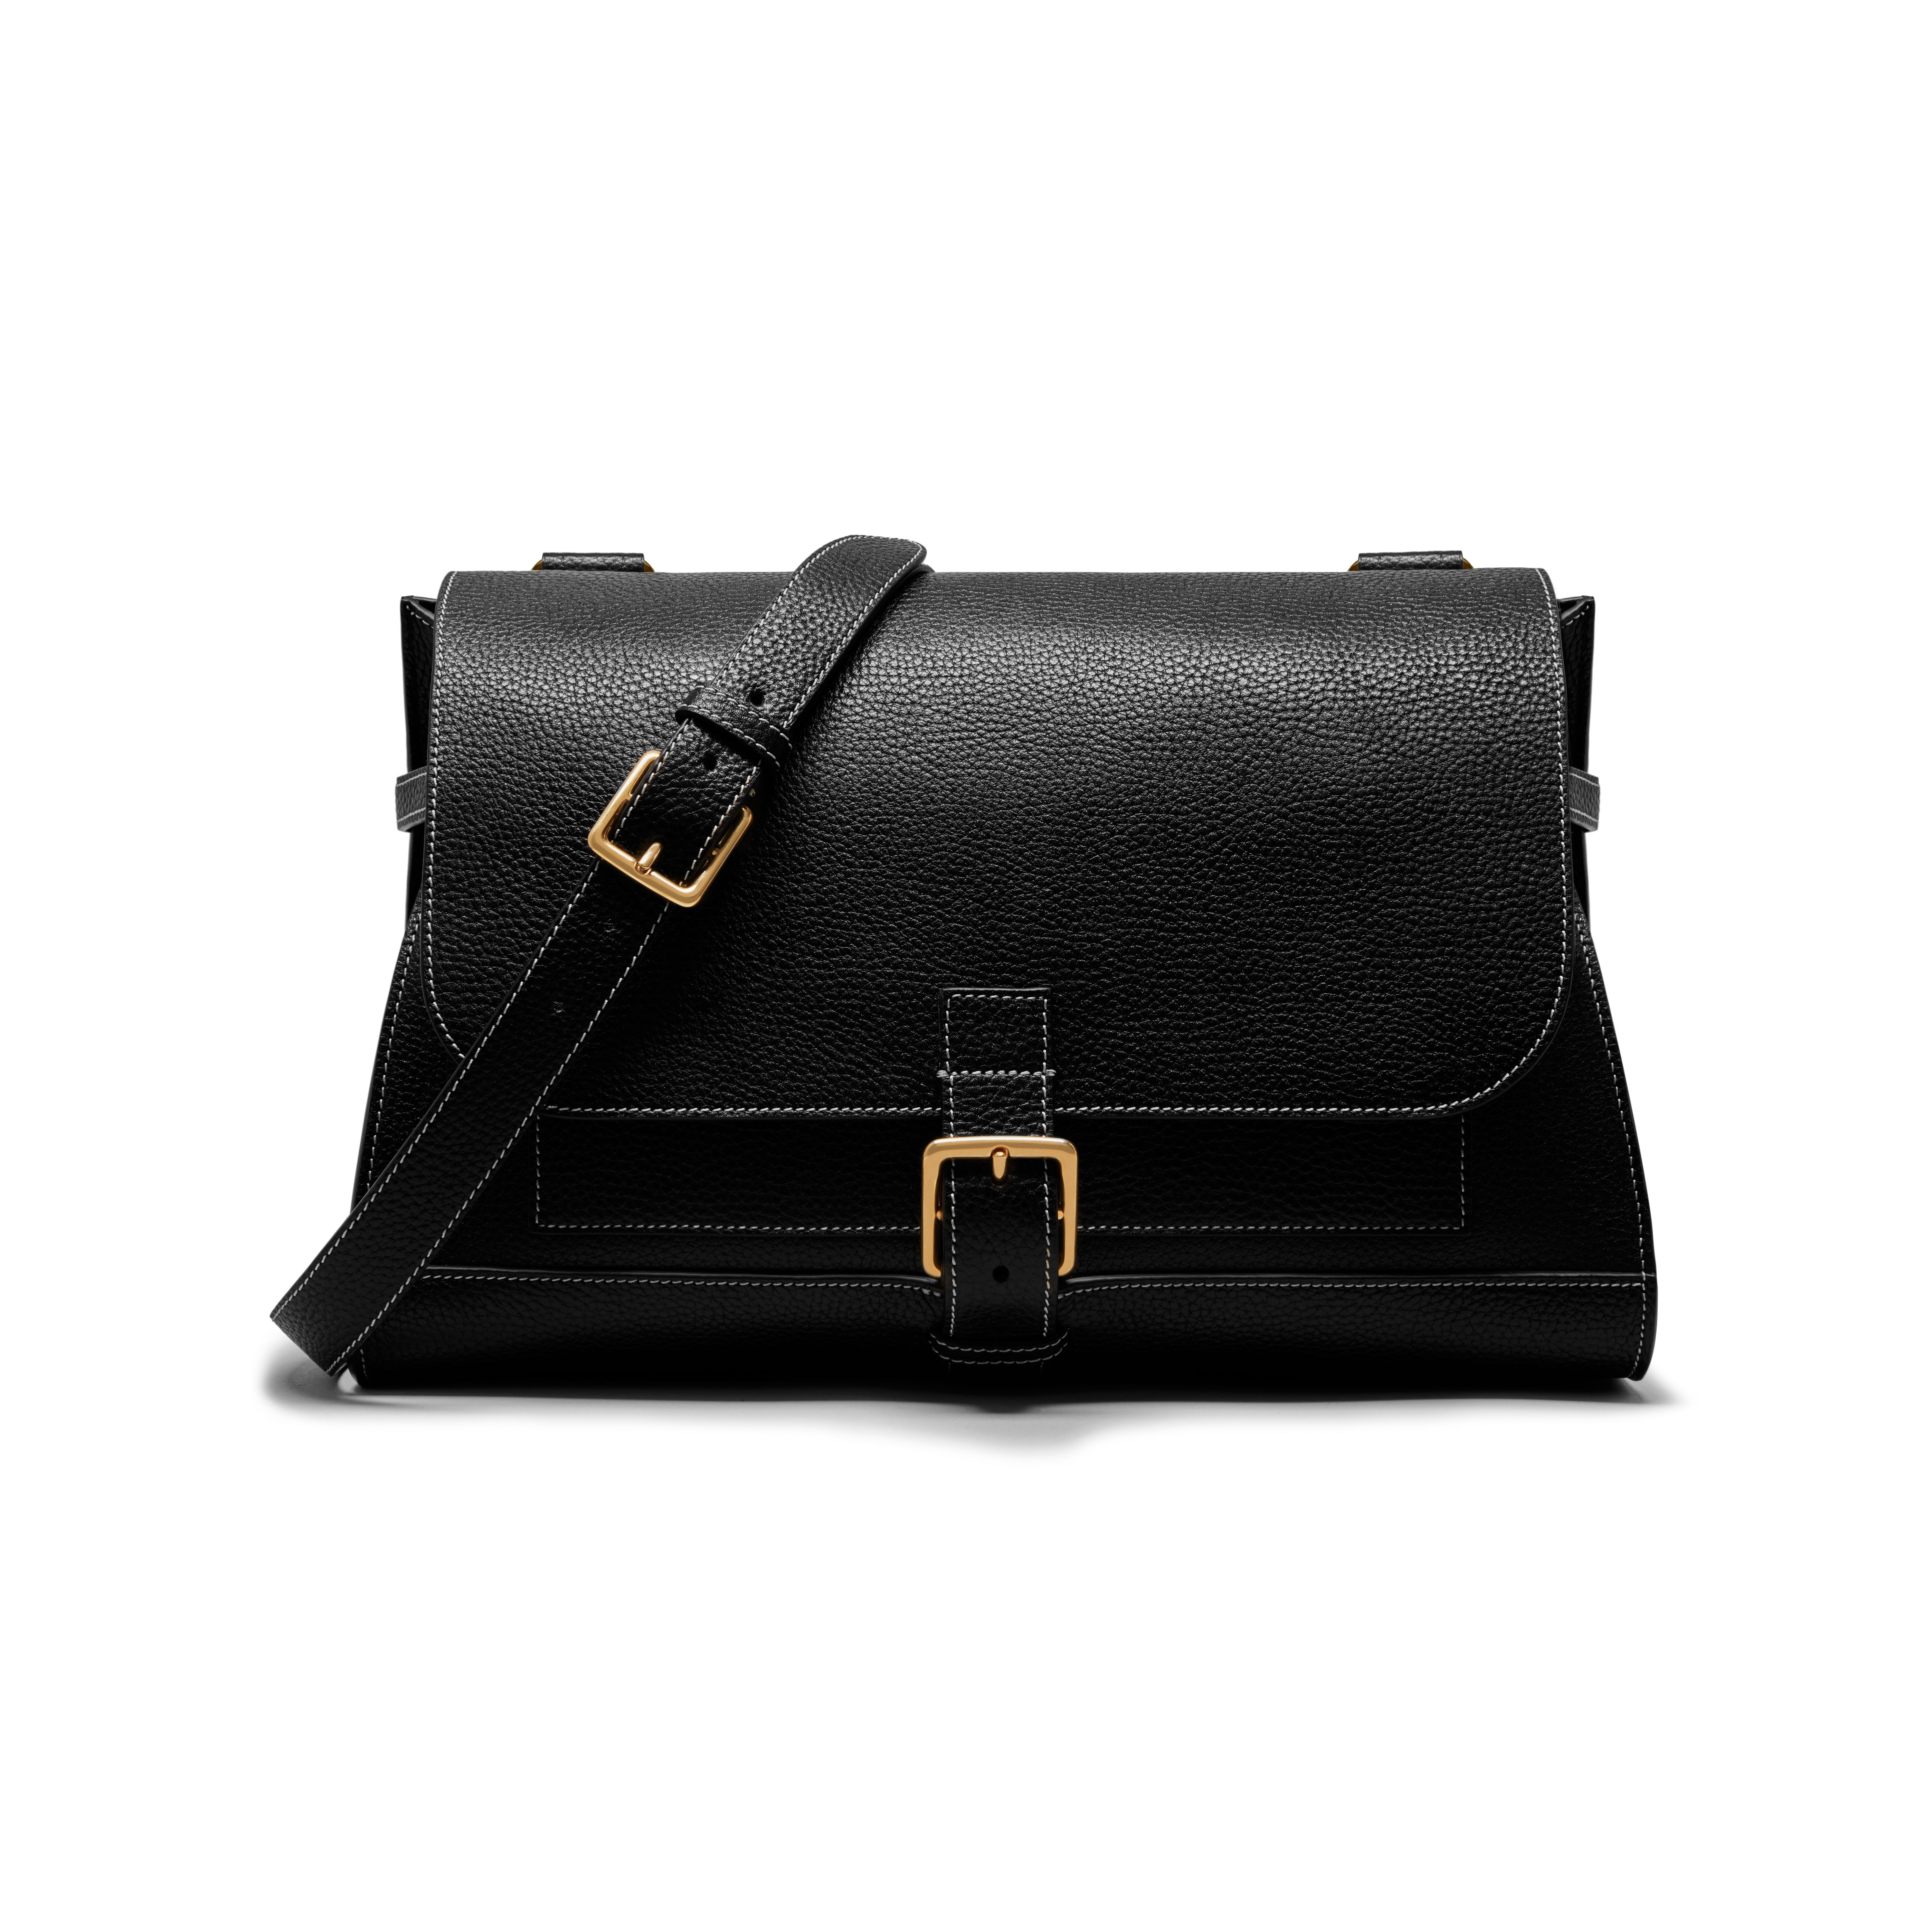 69610b5c4a Mulberry - Small Buckle Satchel in Black Natural Grain Leather ...